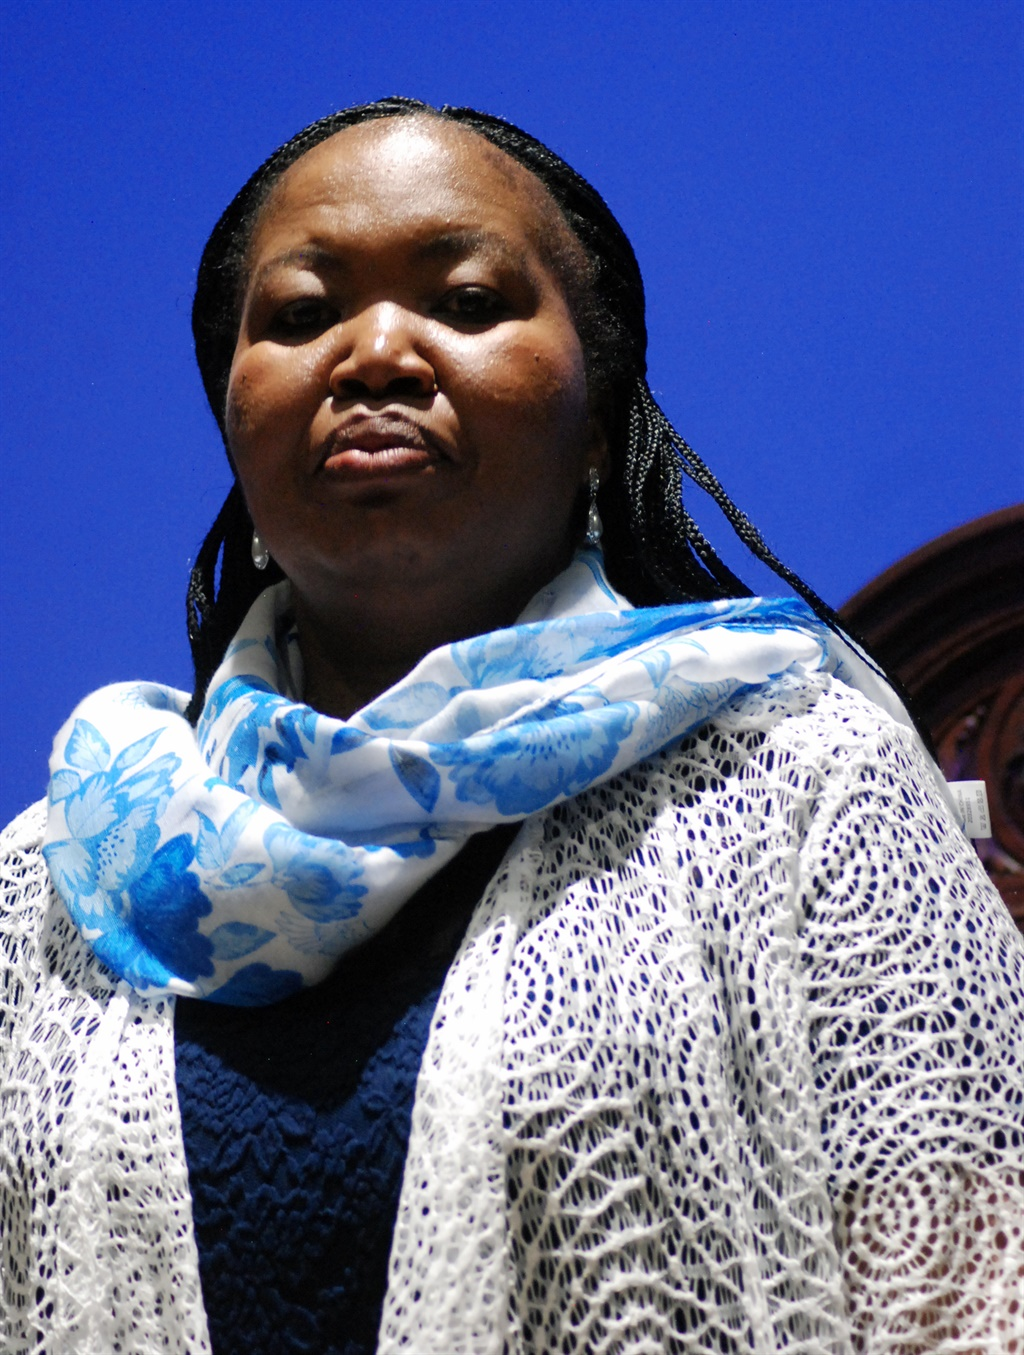 Tshwane speaker on Cogta MEC's decision to suspend her - 'it was a grave breach of separation of powers' - News24